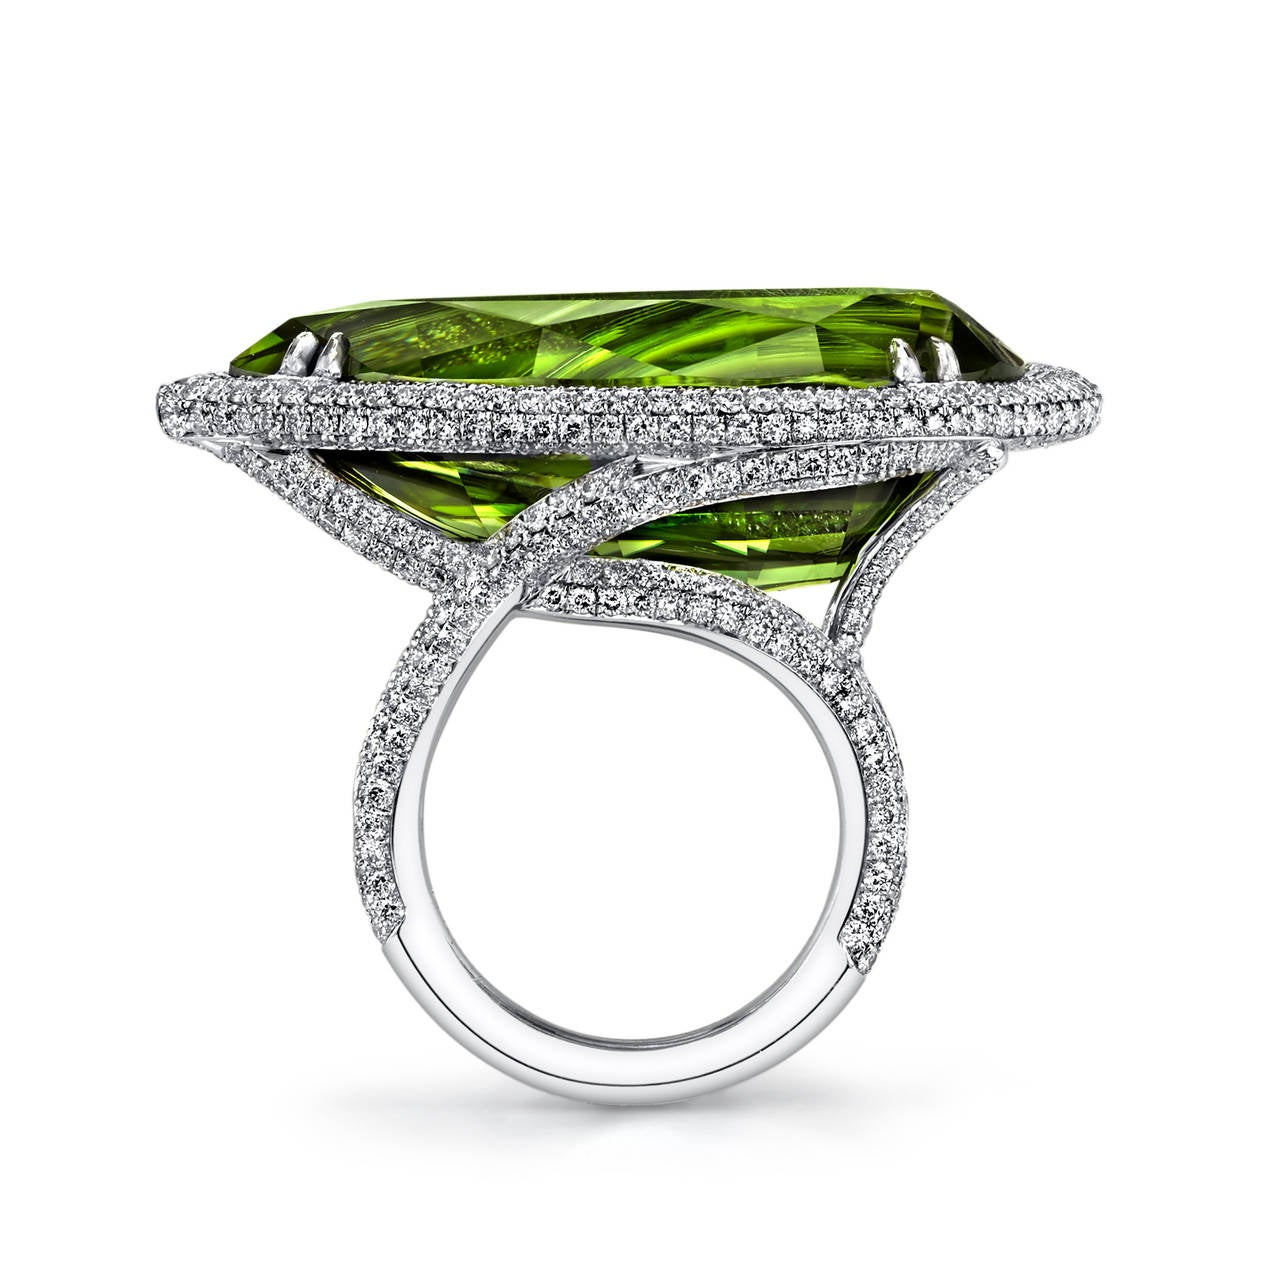 Pear Shaped Peridot Diamond Gold Ring For Sale at 1stdibs